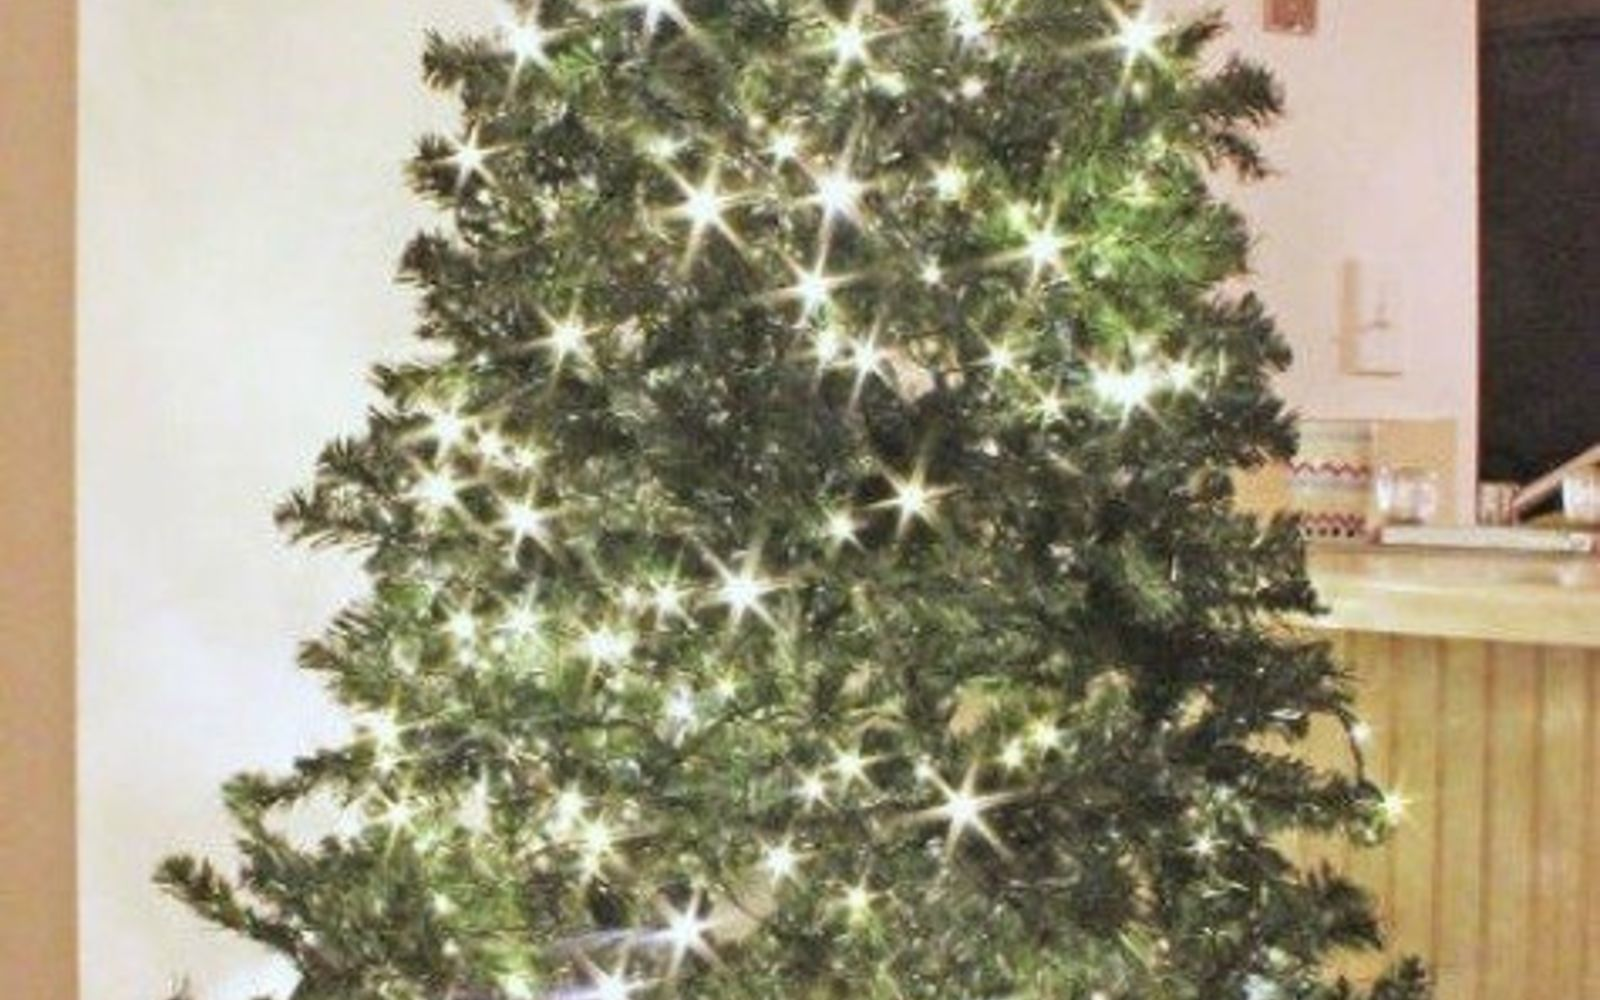 s don t stop at ornaments these tree decorating ideas are even better, christmas decorations, seasonal holiday decor, Twist twinkle lights throughout the branches